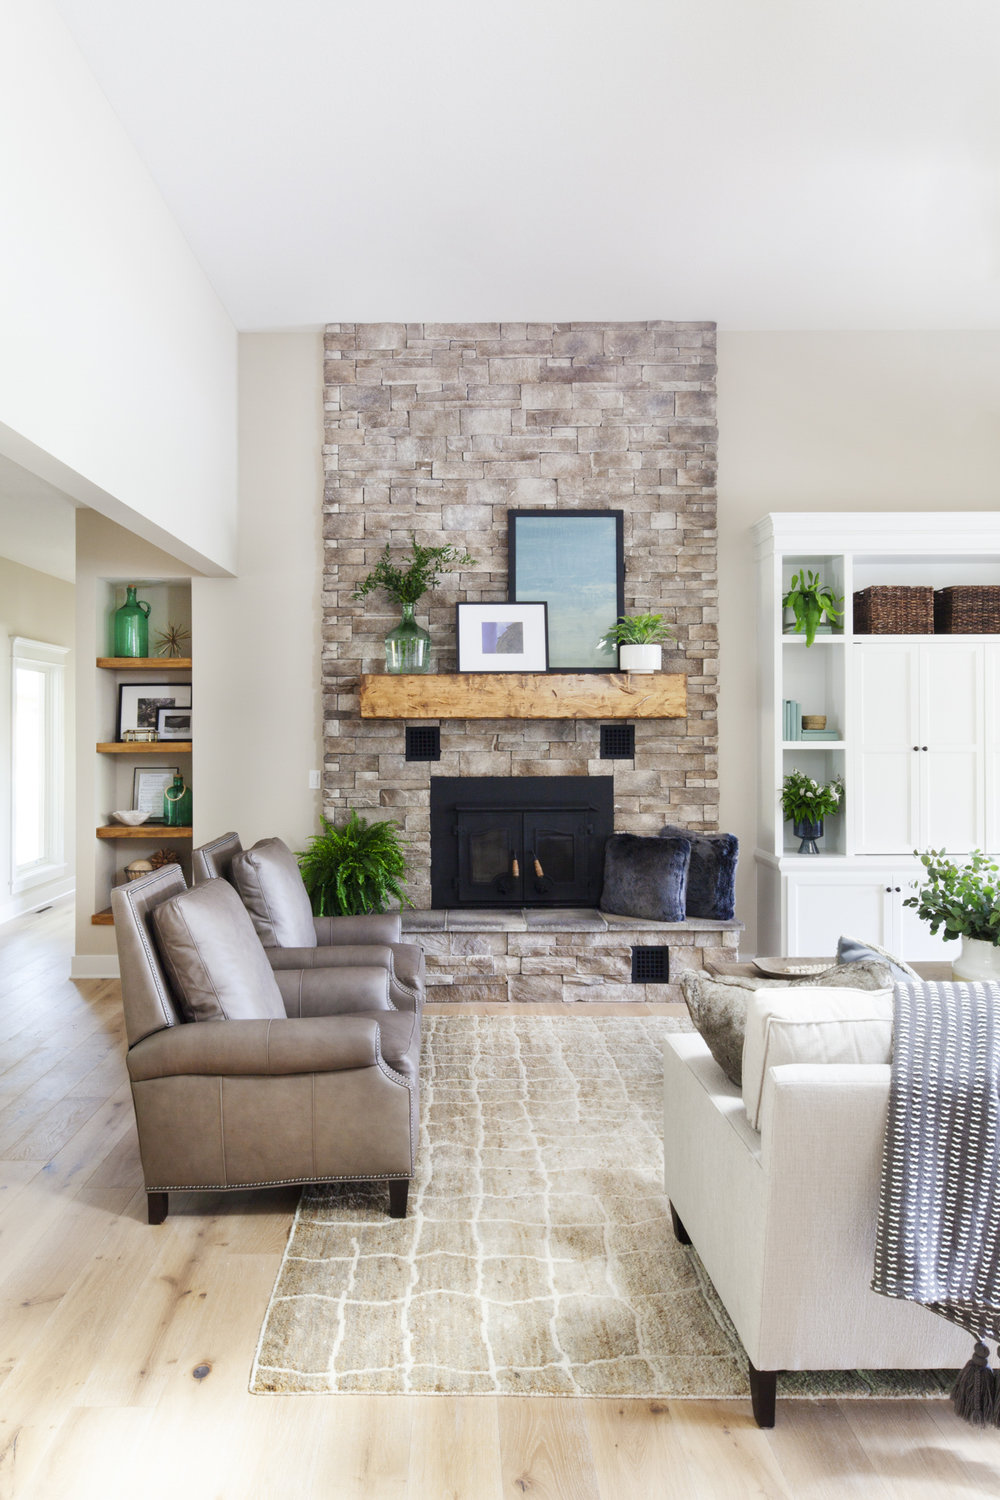 before-and-after-home-reveal-scout-and-nimble-lake-view-luxe-country-interior-design-open-floor-plan-living-room-recliners-92.jpg